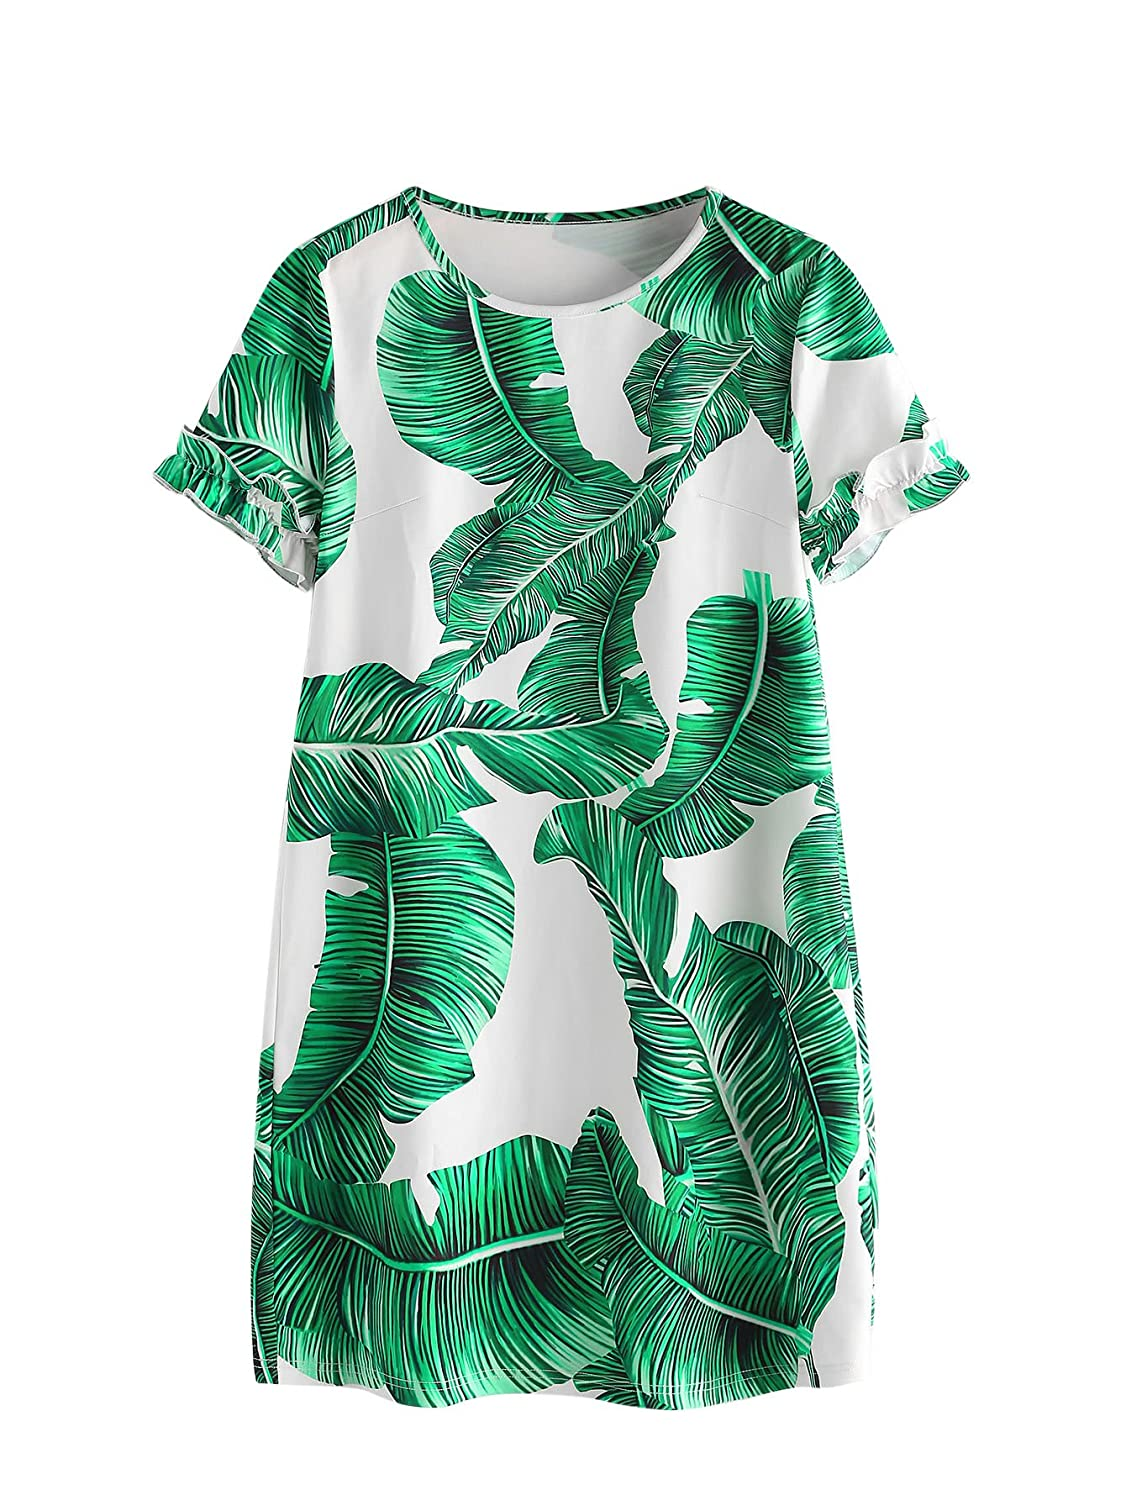 3f1d59bbca1 Floerns Women s Palm Leaf Print Short Sleeve Summer Dress at Amazon Women s  Clothing store